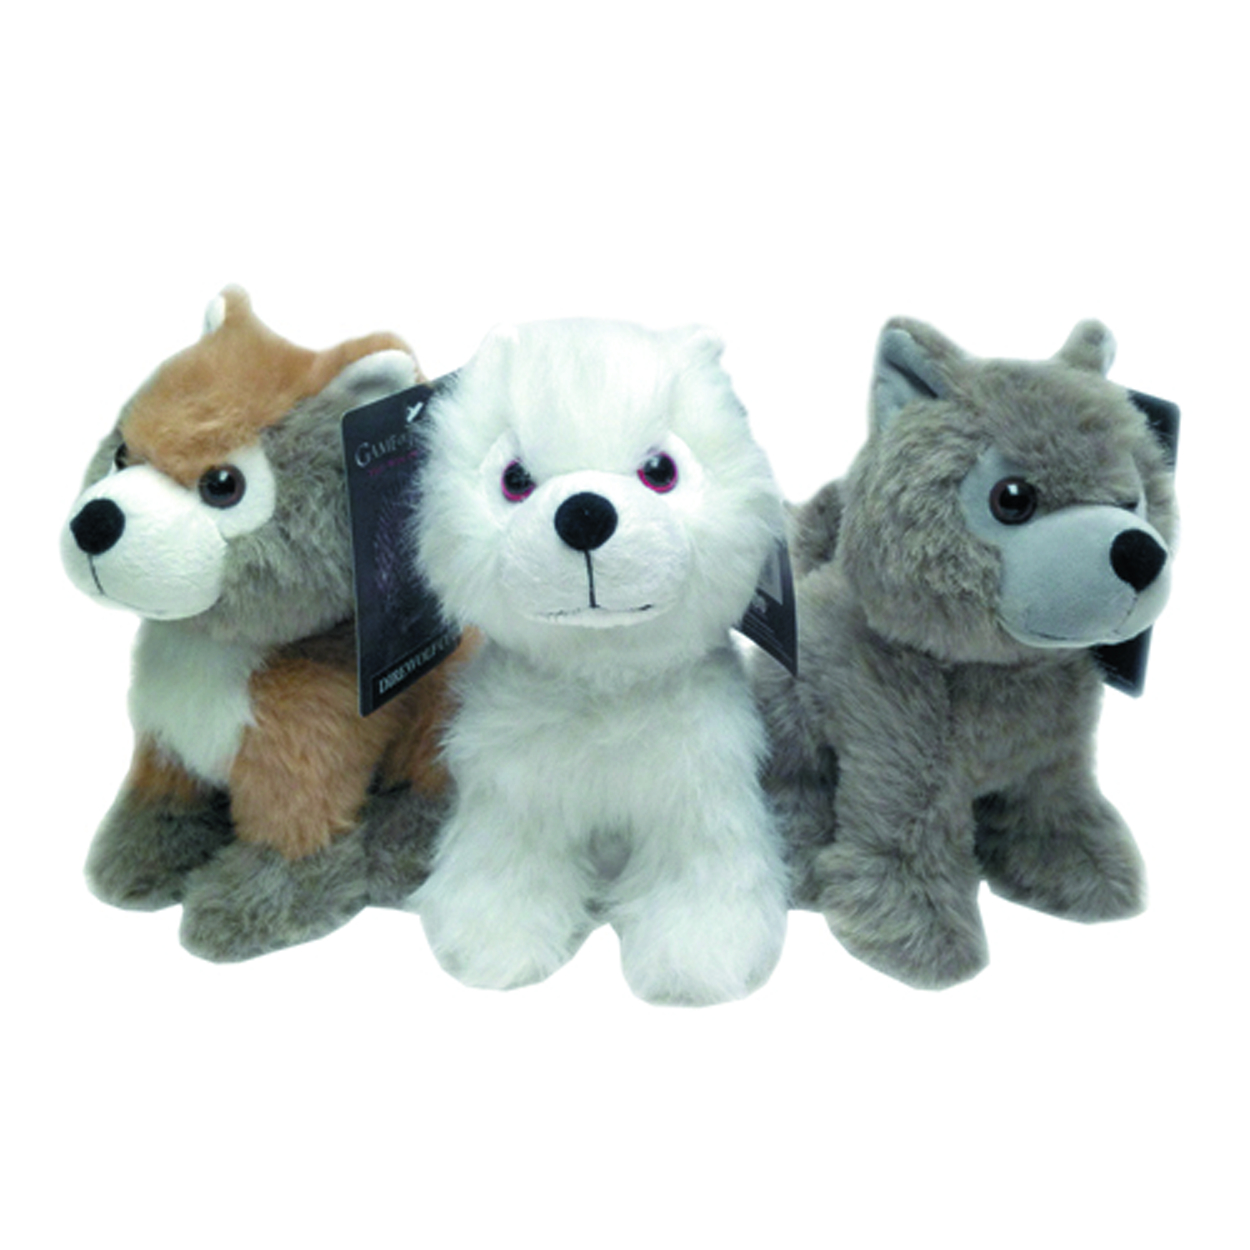 GAME OF THRONES DIRE WOLF CUB PLUSH ASST A